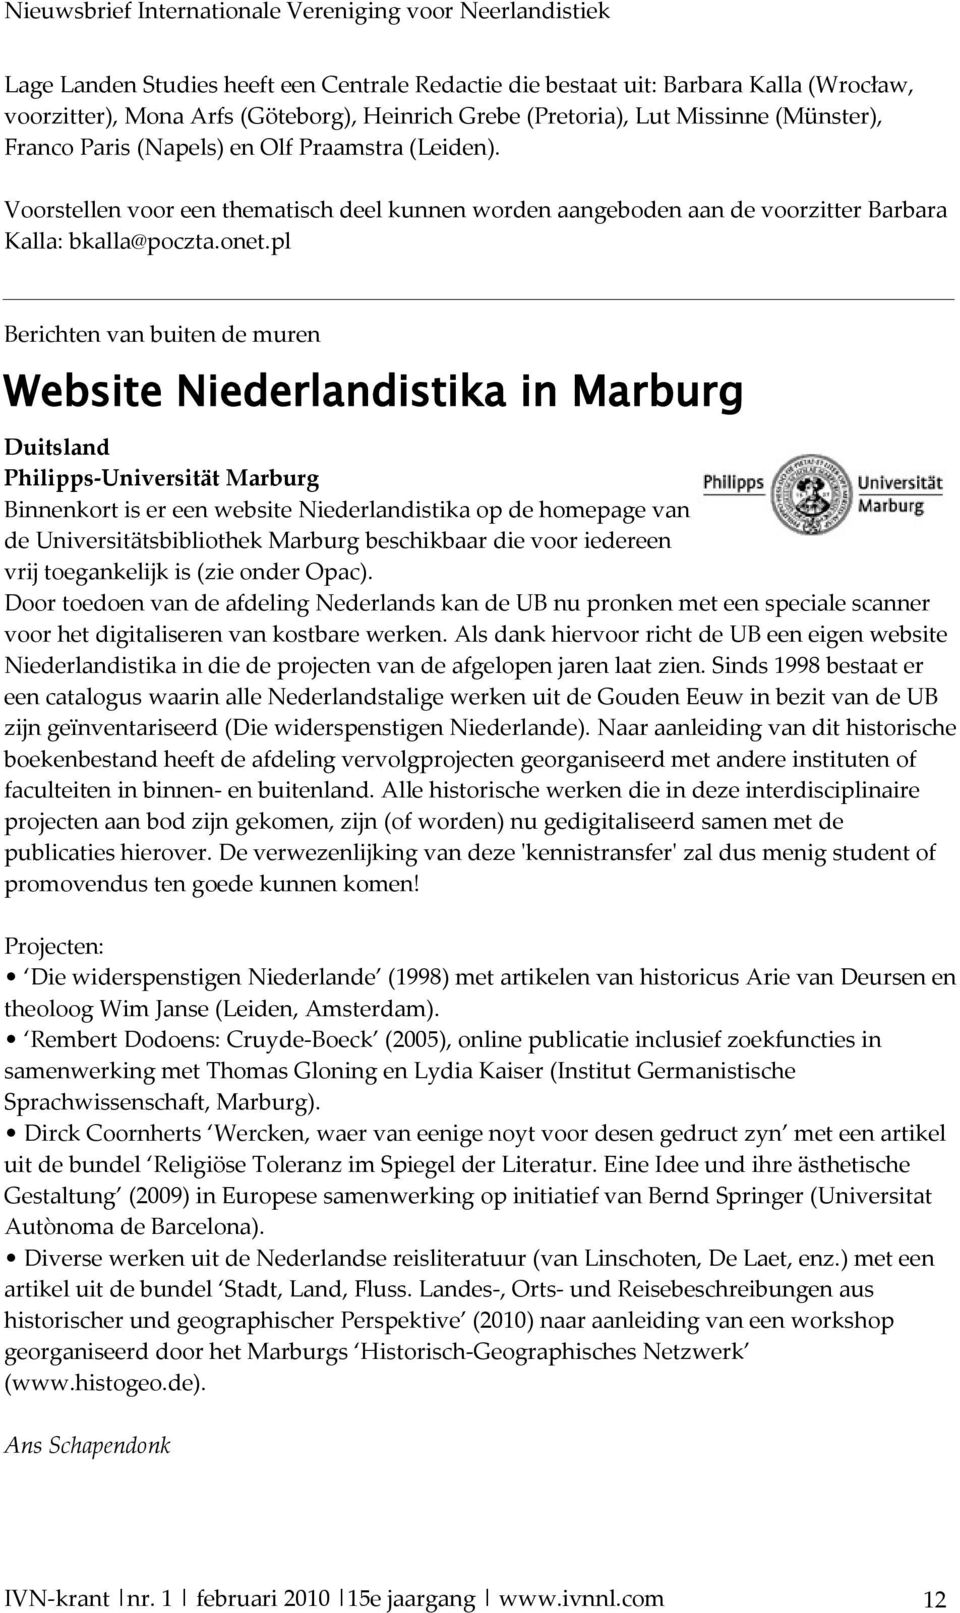 pl Berichten van buiten de muren Website Niederlandistika in Marburg Duitsland Philipps-Universität Marburg Binnenkort is er een website Niederlandistika op de homepage van de Universitätsbibliothek